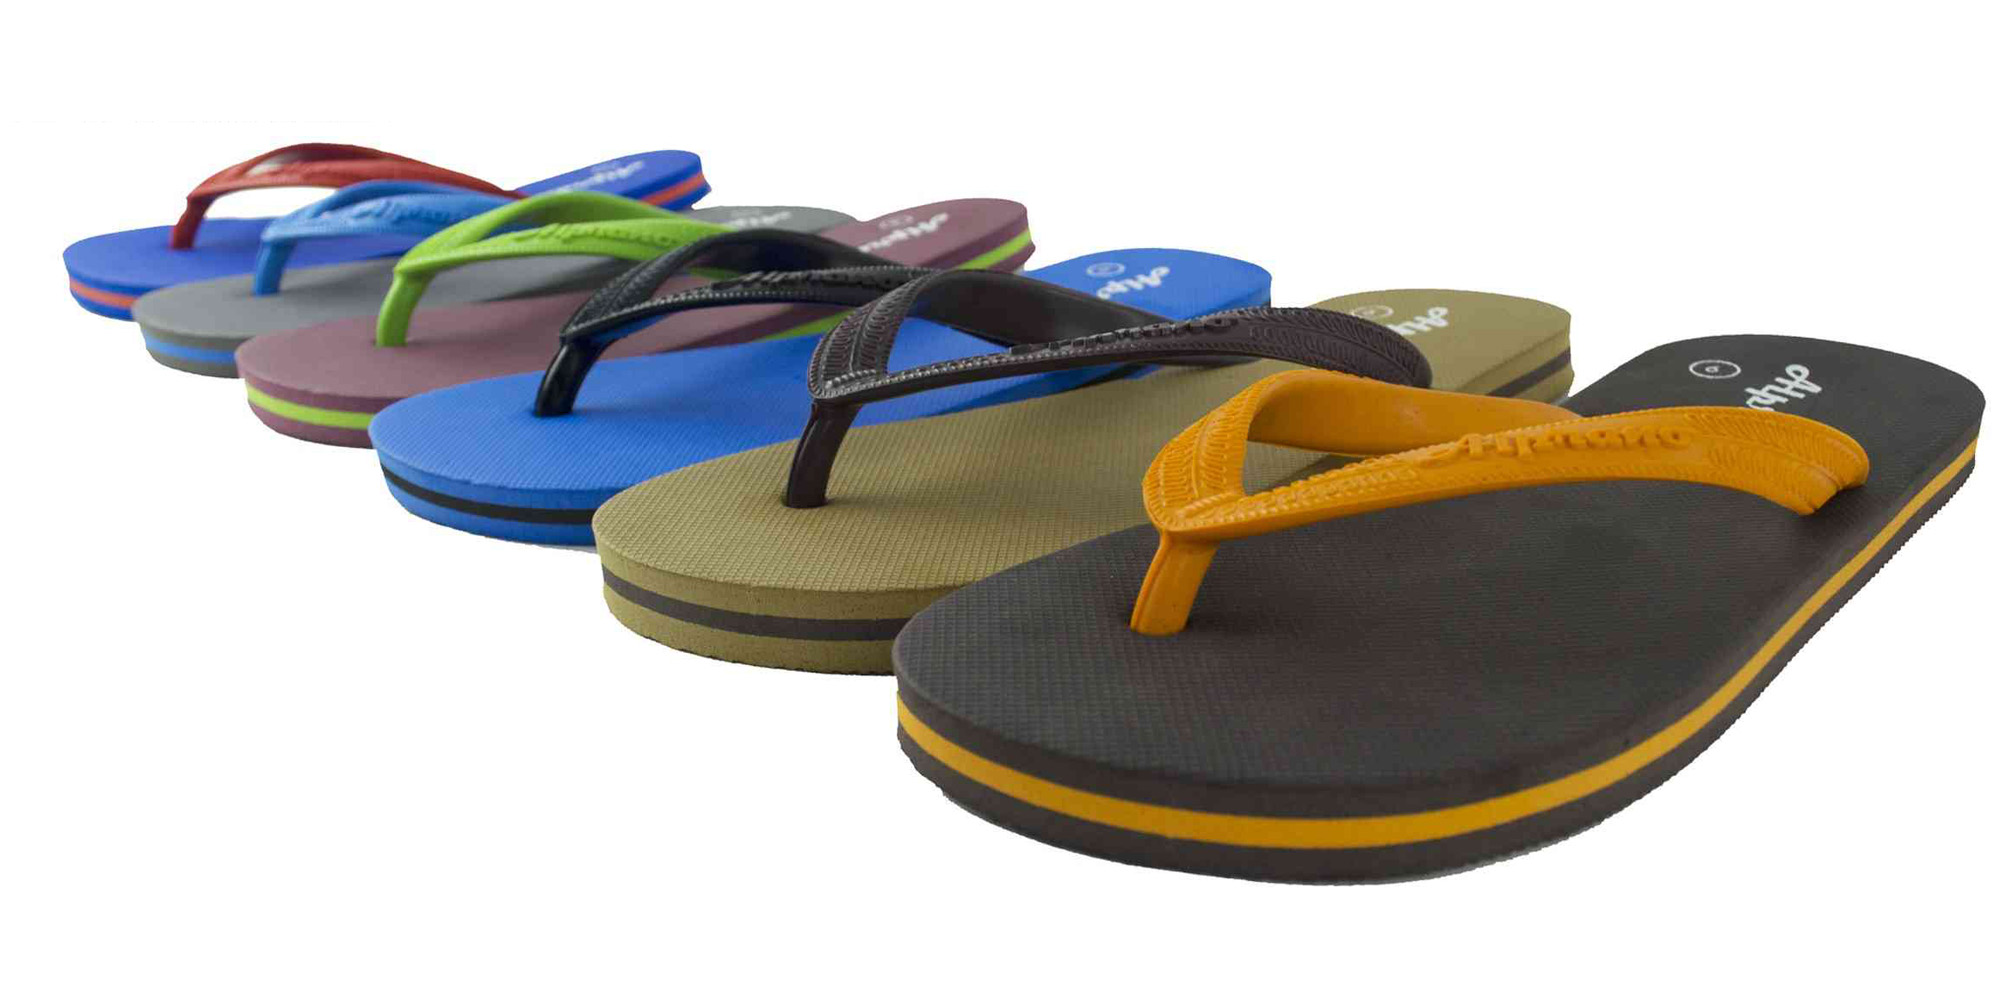 JN-APM06 (UK9) Alprano Slipper